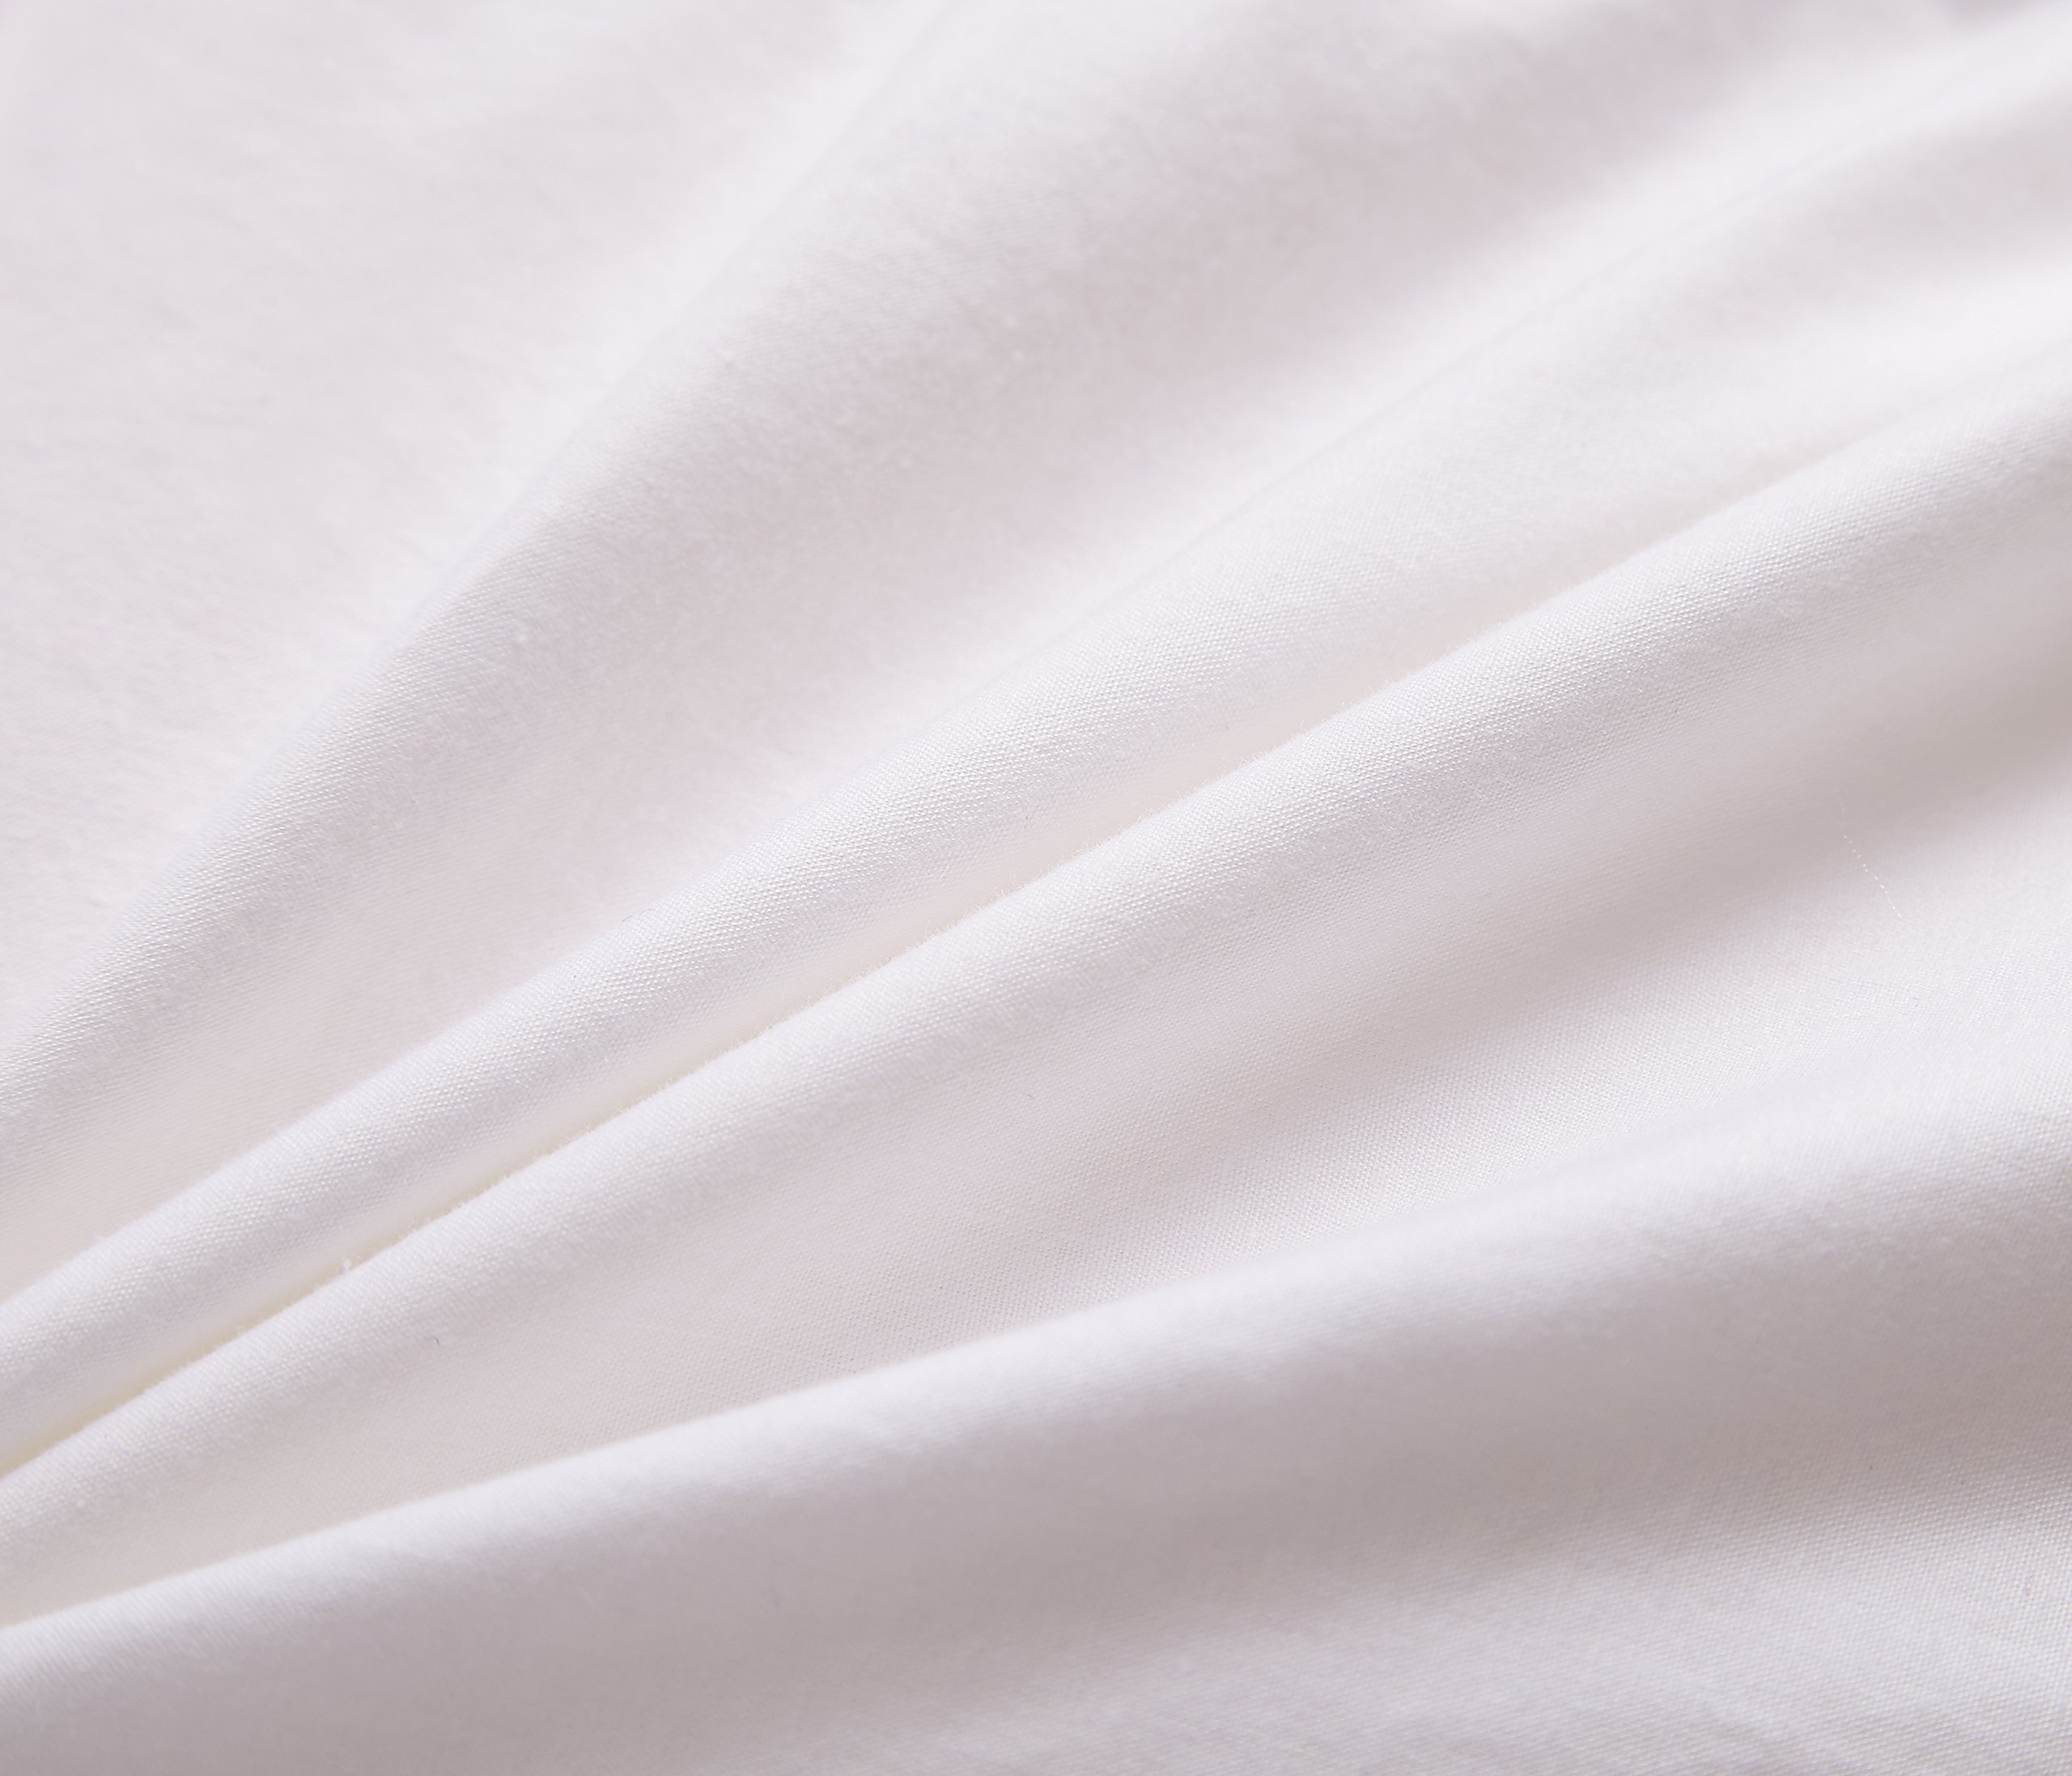 Topsleepy 50% Goose Down and 50% Feather Filling Queen (88-by-88-Inch) Bedding Comforter, White by Topsleepy (Image #5)